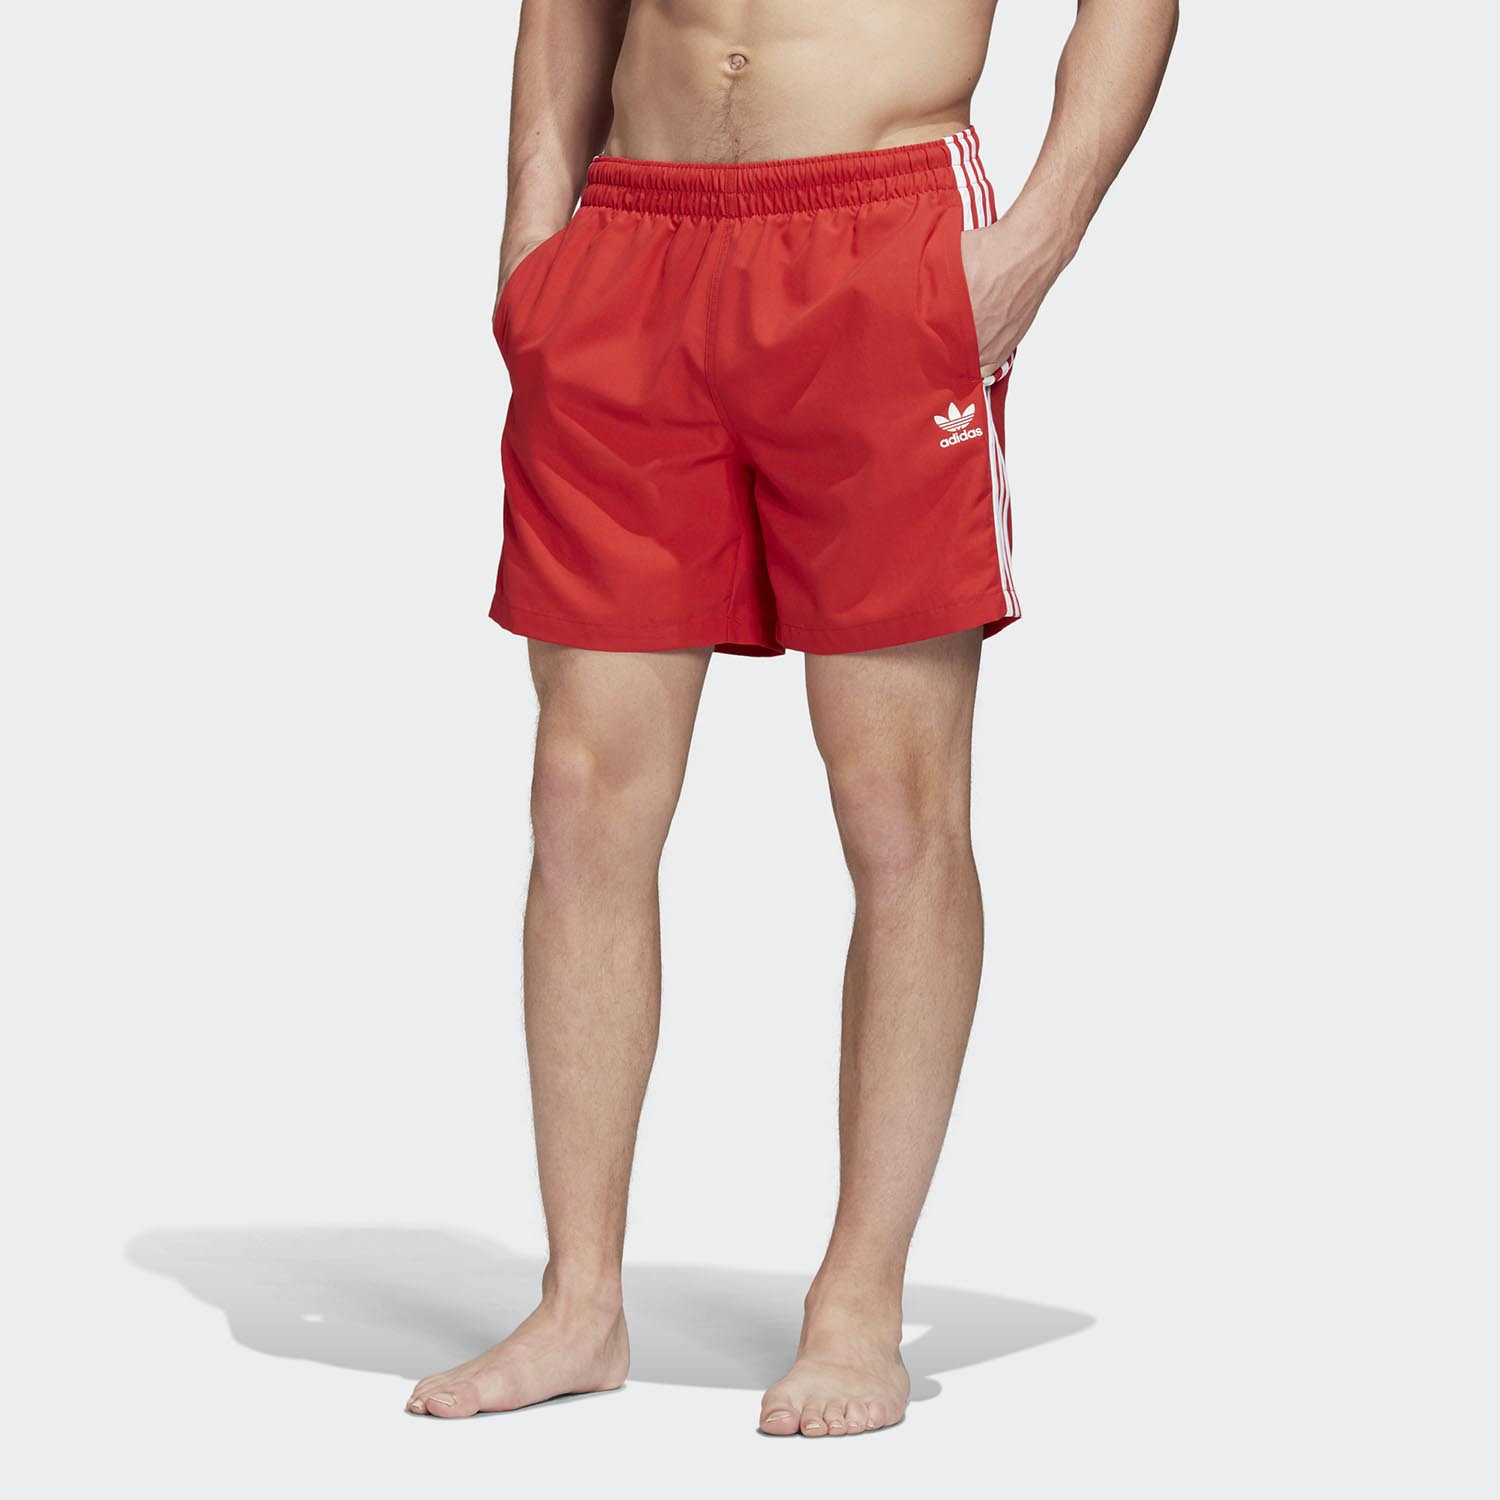 adidas Originals Men's 3-Stripes Swim Shorts (9000045724_18021)